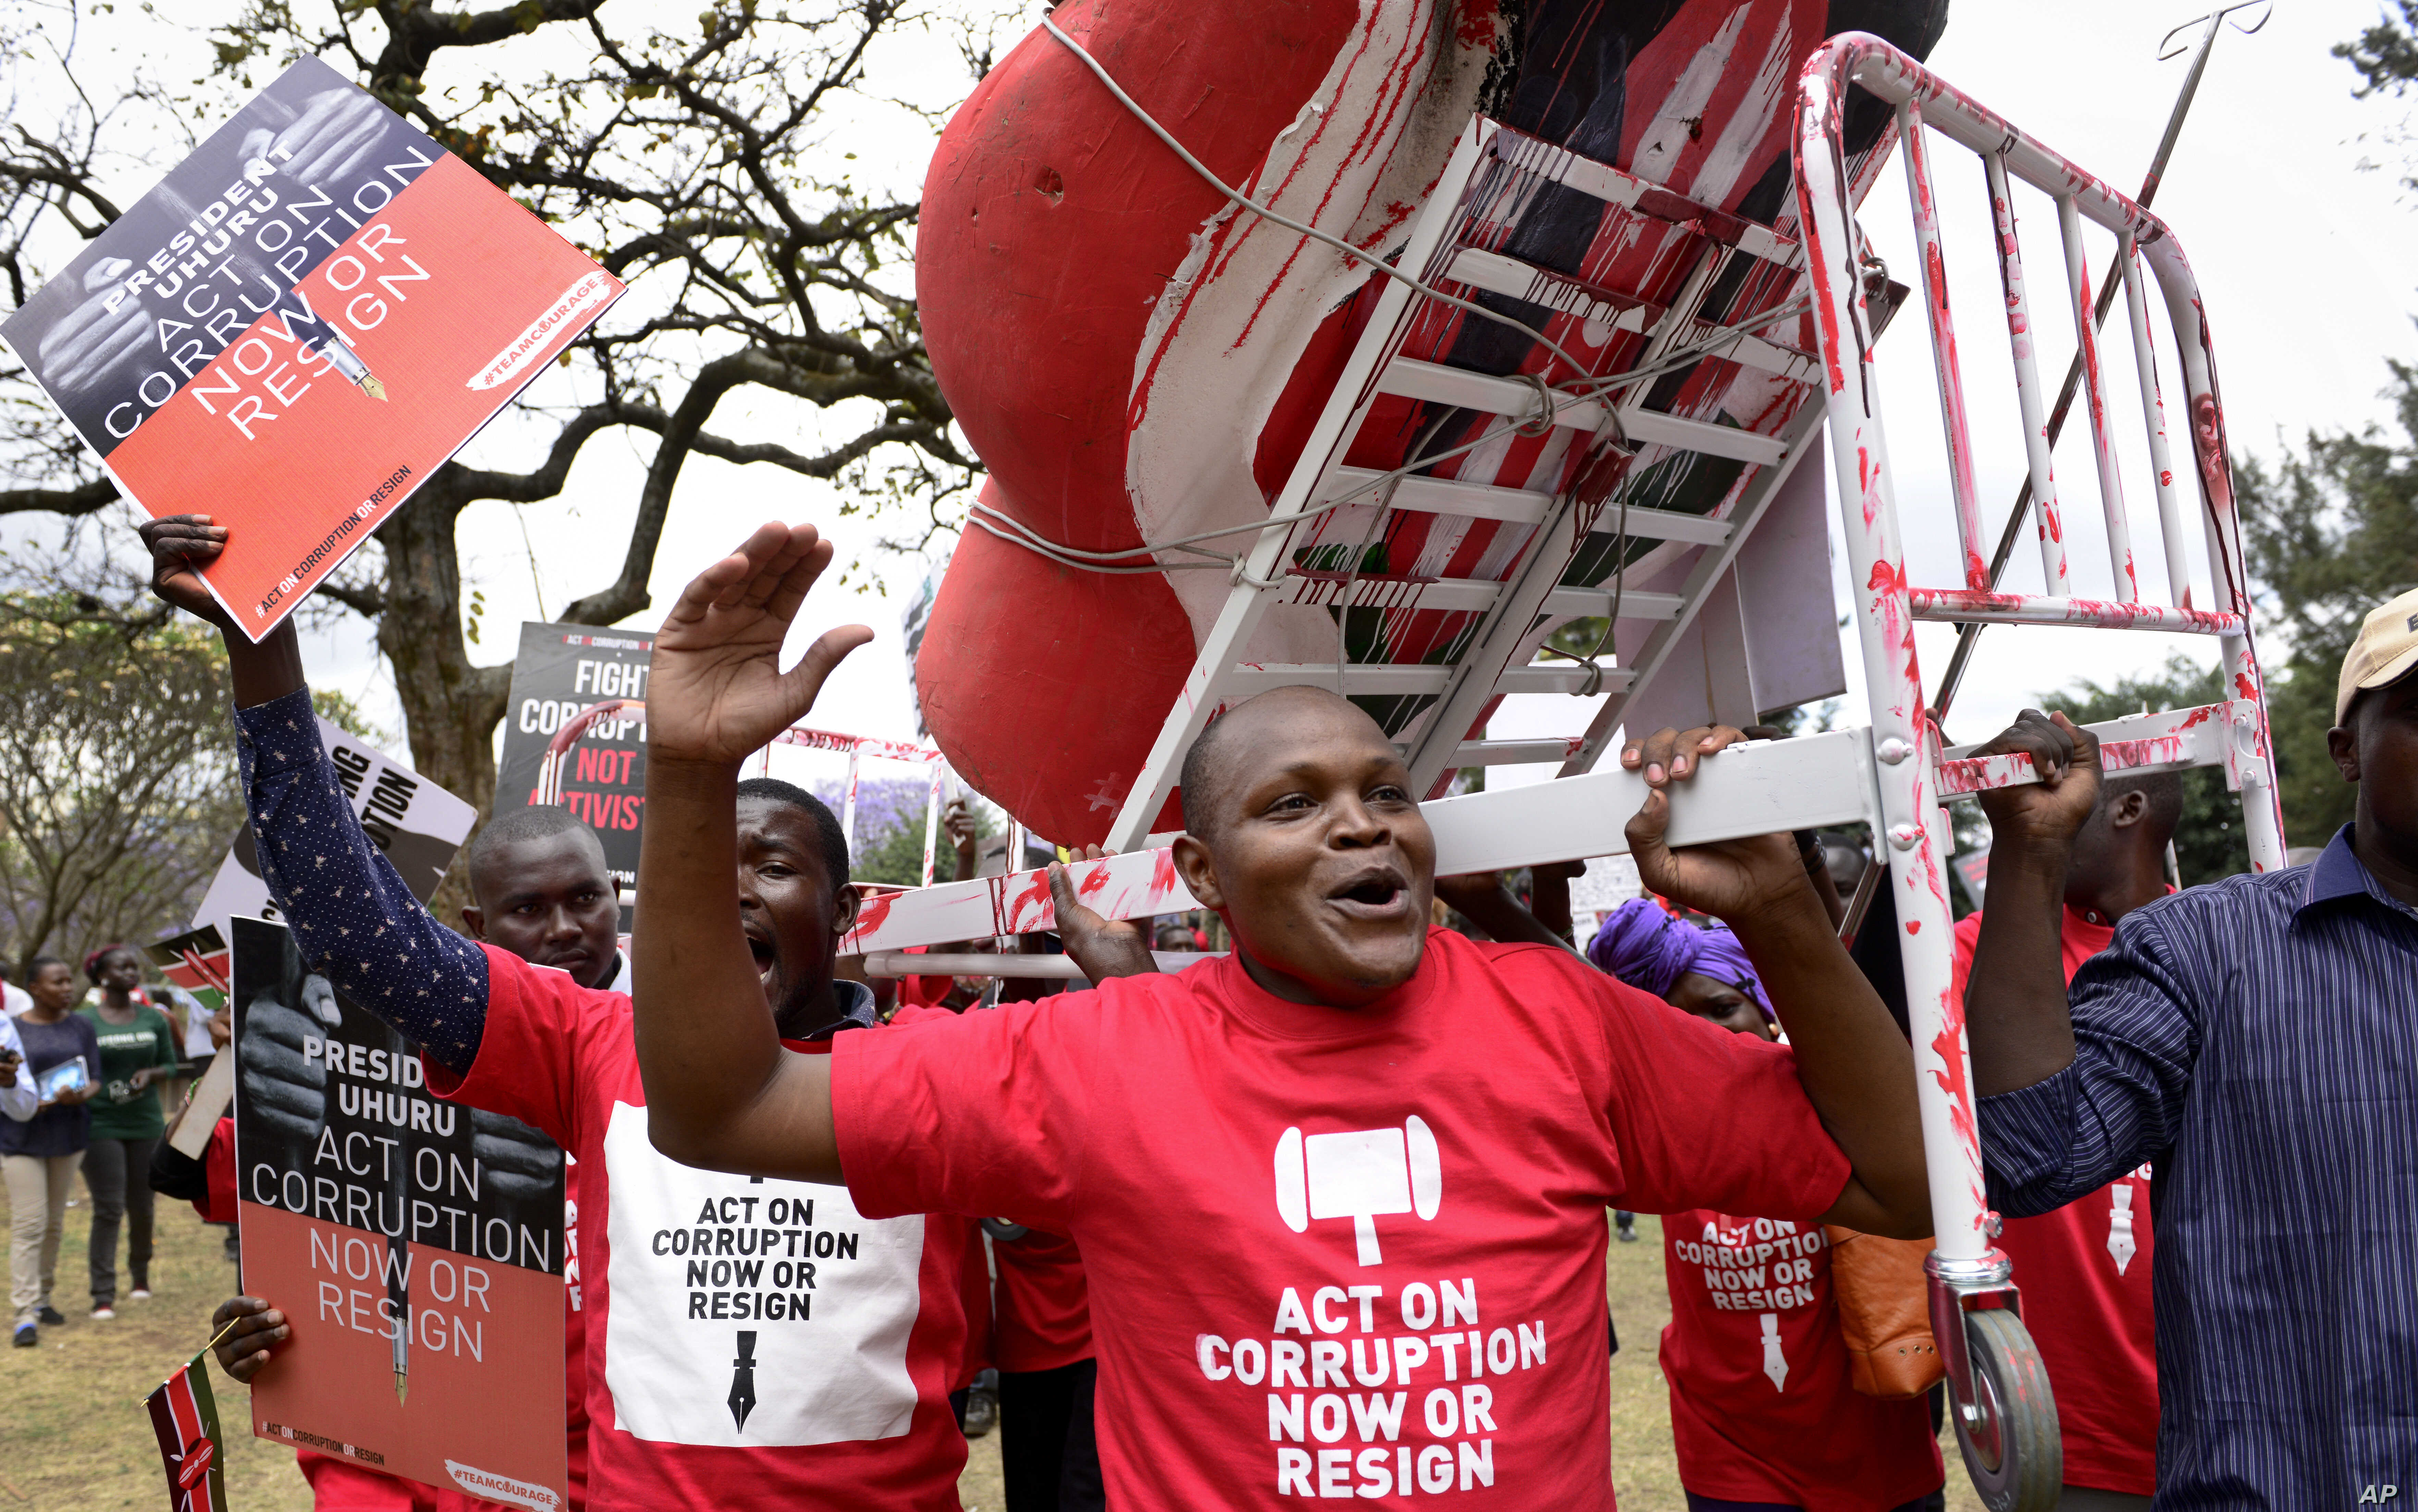 Kenya Corruption: Demonstrators carry a mock hospital bed covered in fake blood to illustrate the slogan that Kenyans are bleeding due to poor hospital services caused by corruption, in Nairobi, Kenya Thursday, Nov. 3, 2016.